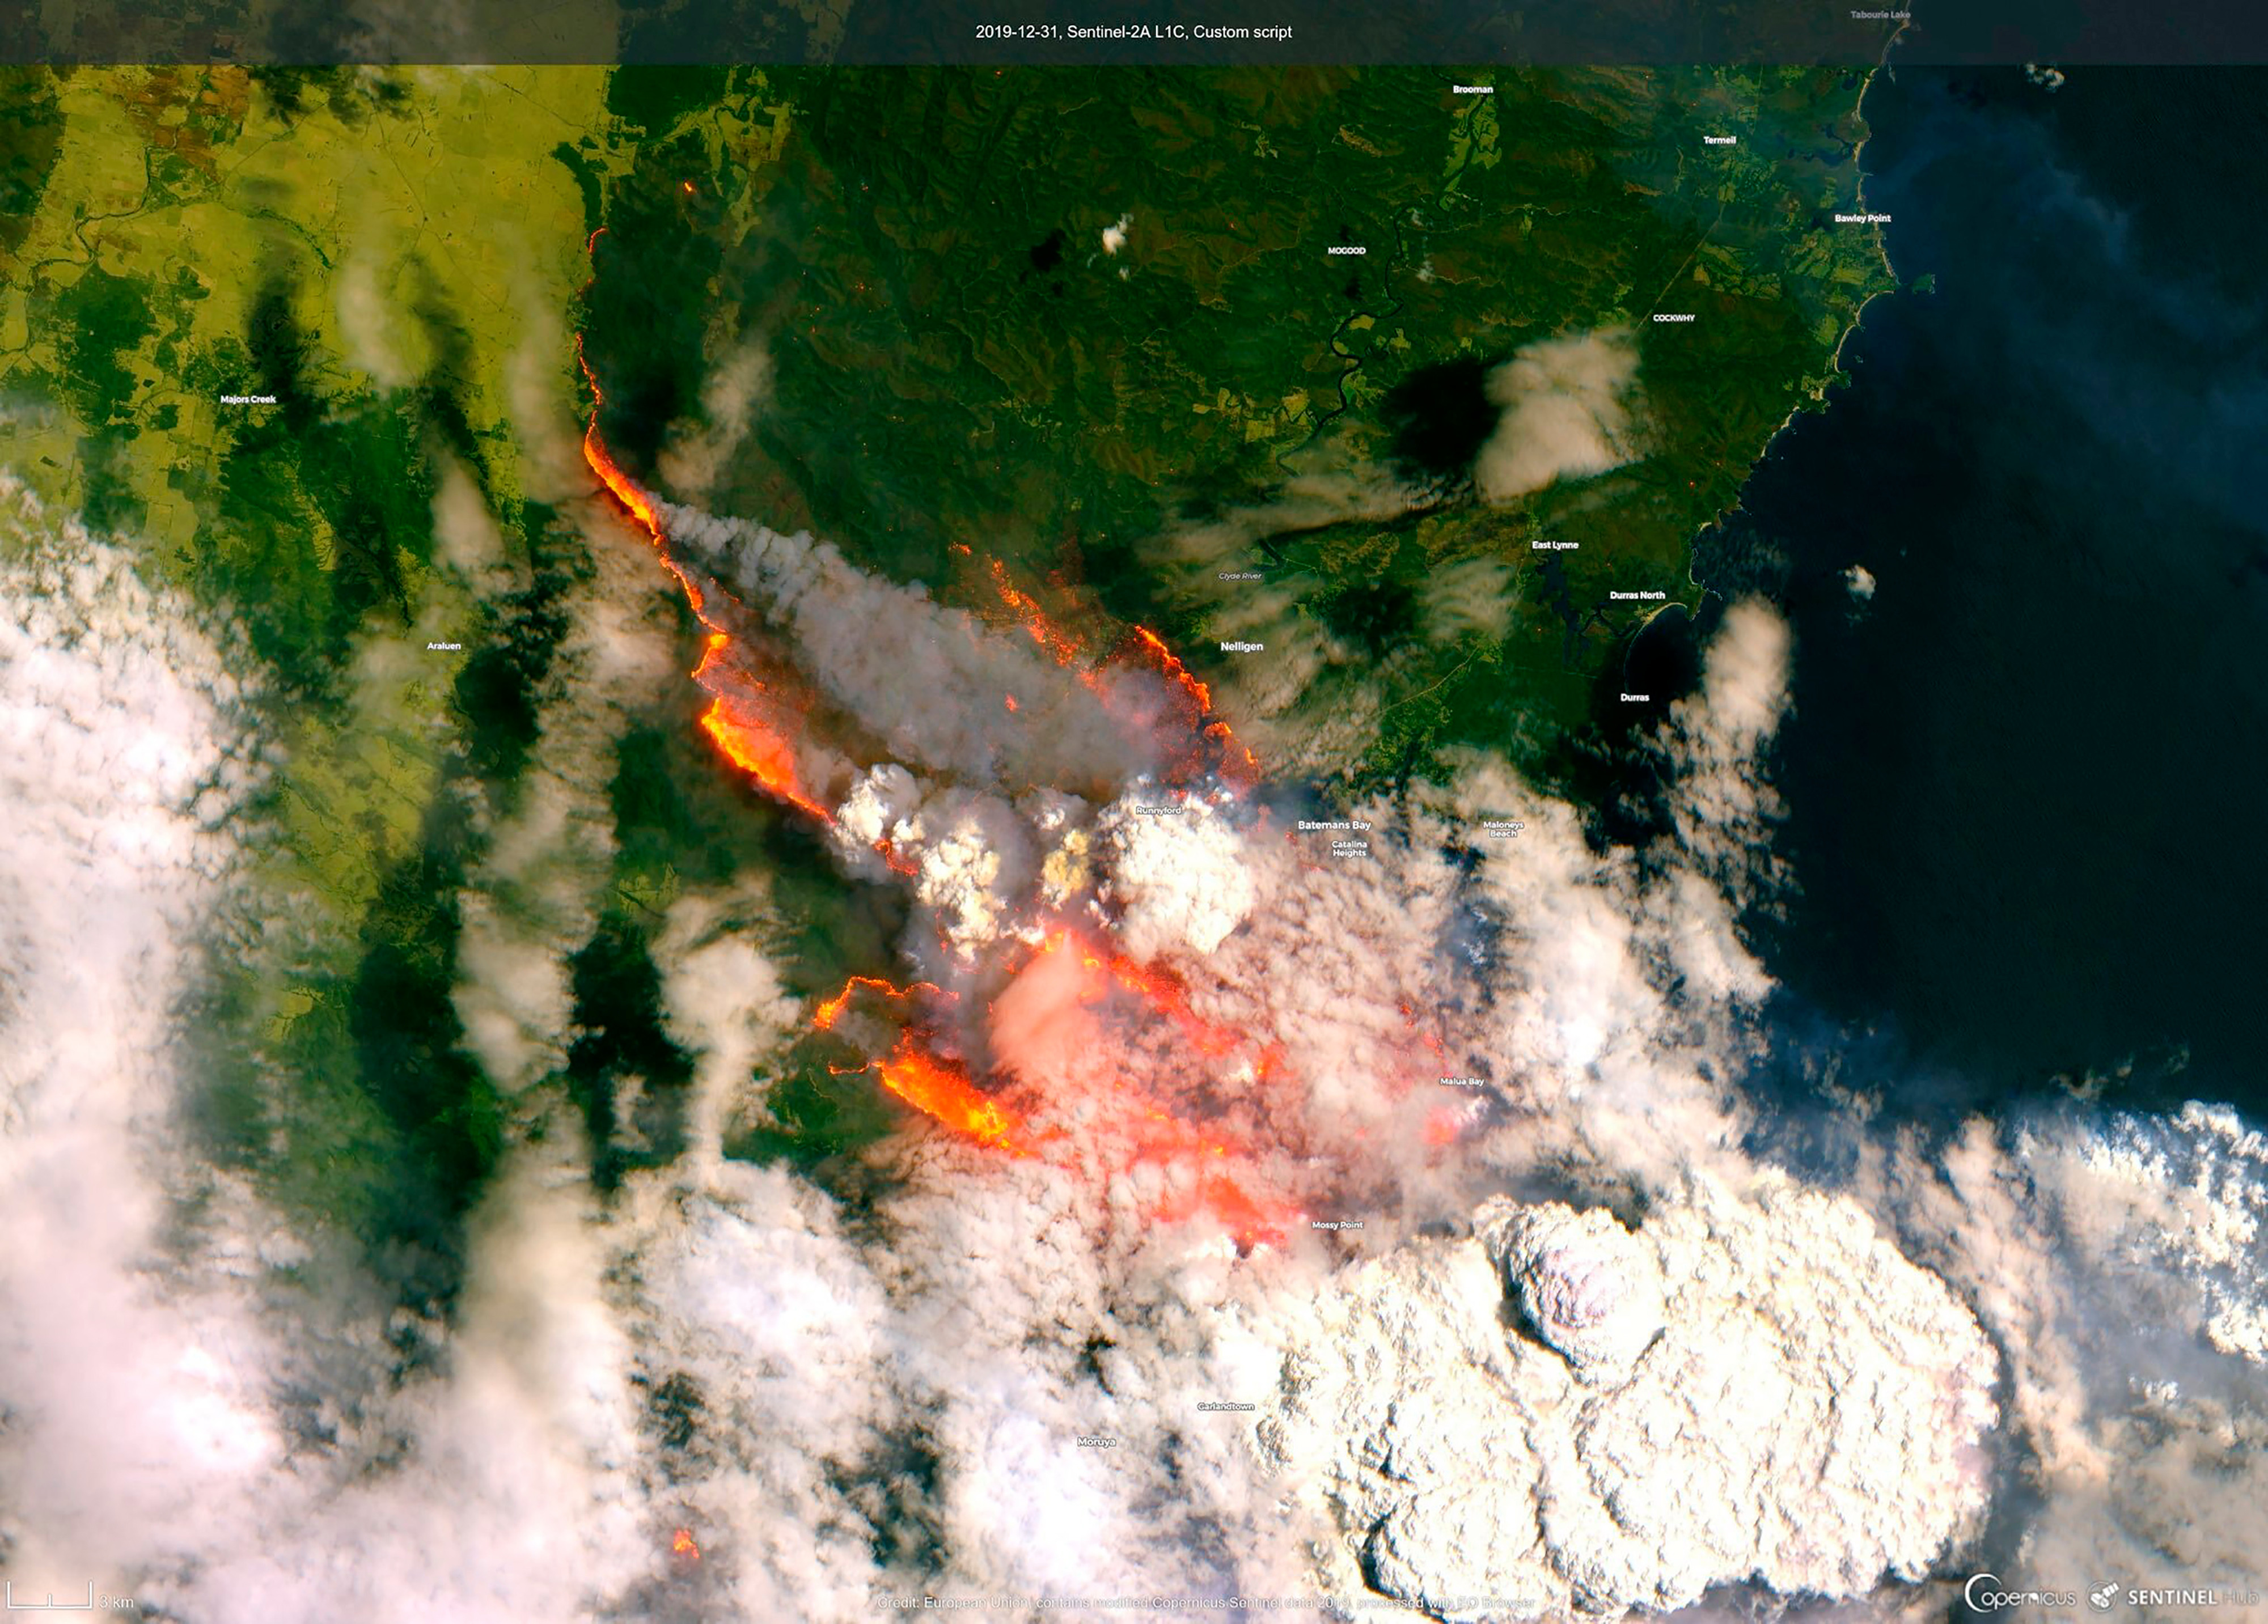 A satellite picture shows the bush fires burning out of control near Bateman's Bay, New South Wales